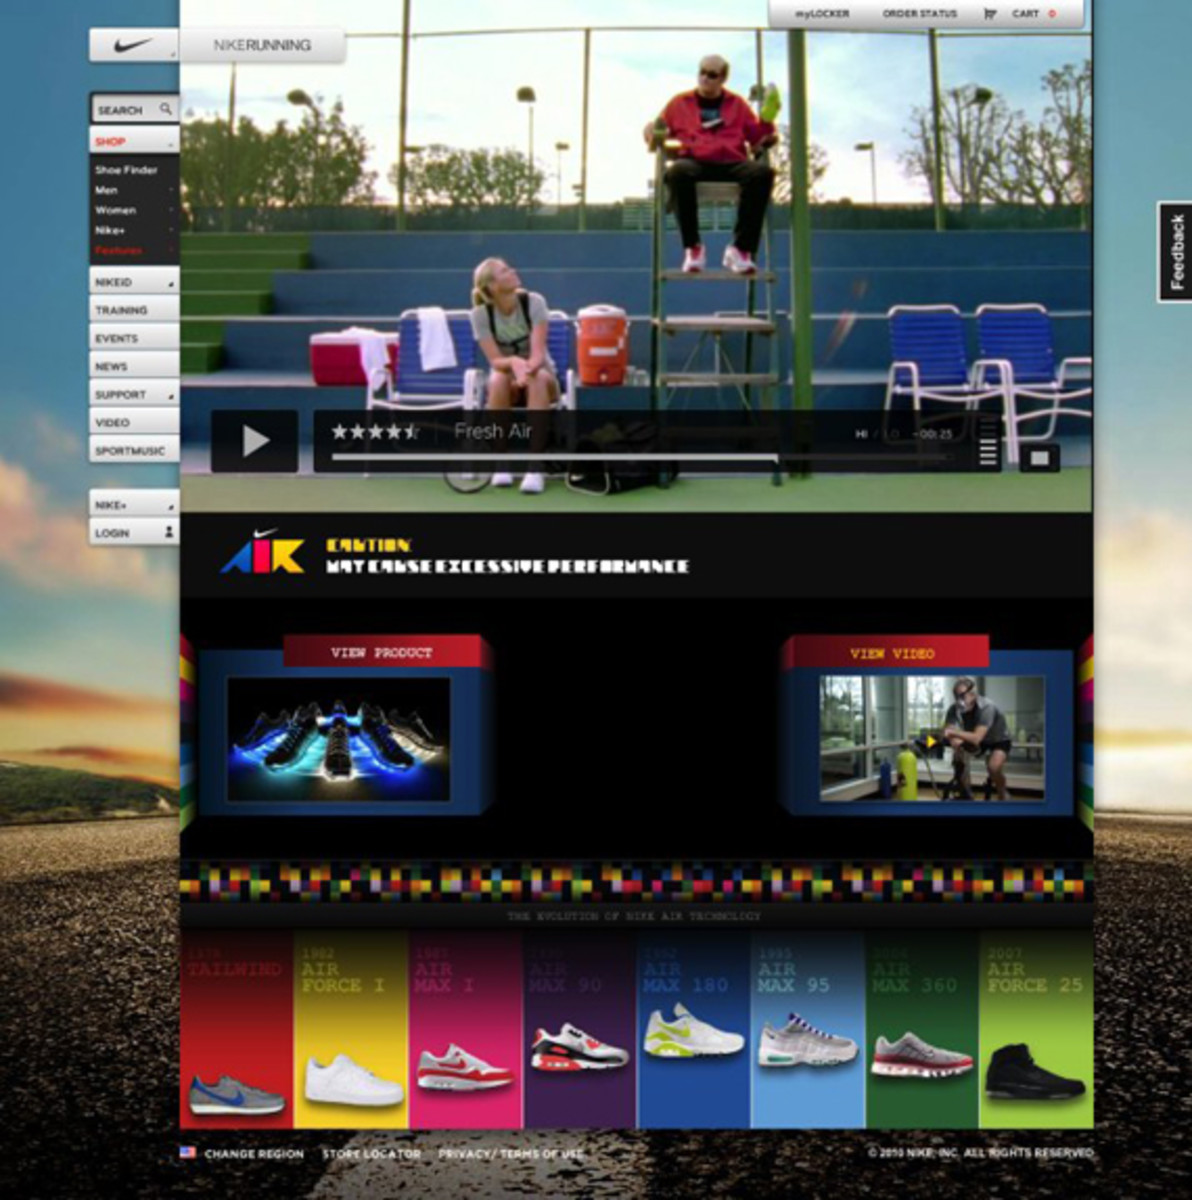 nike-air-attack-website-02